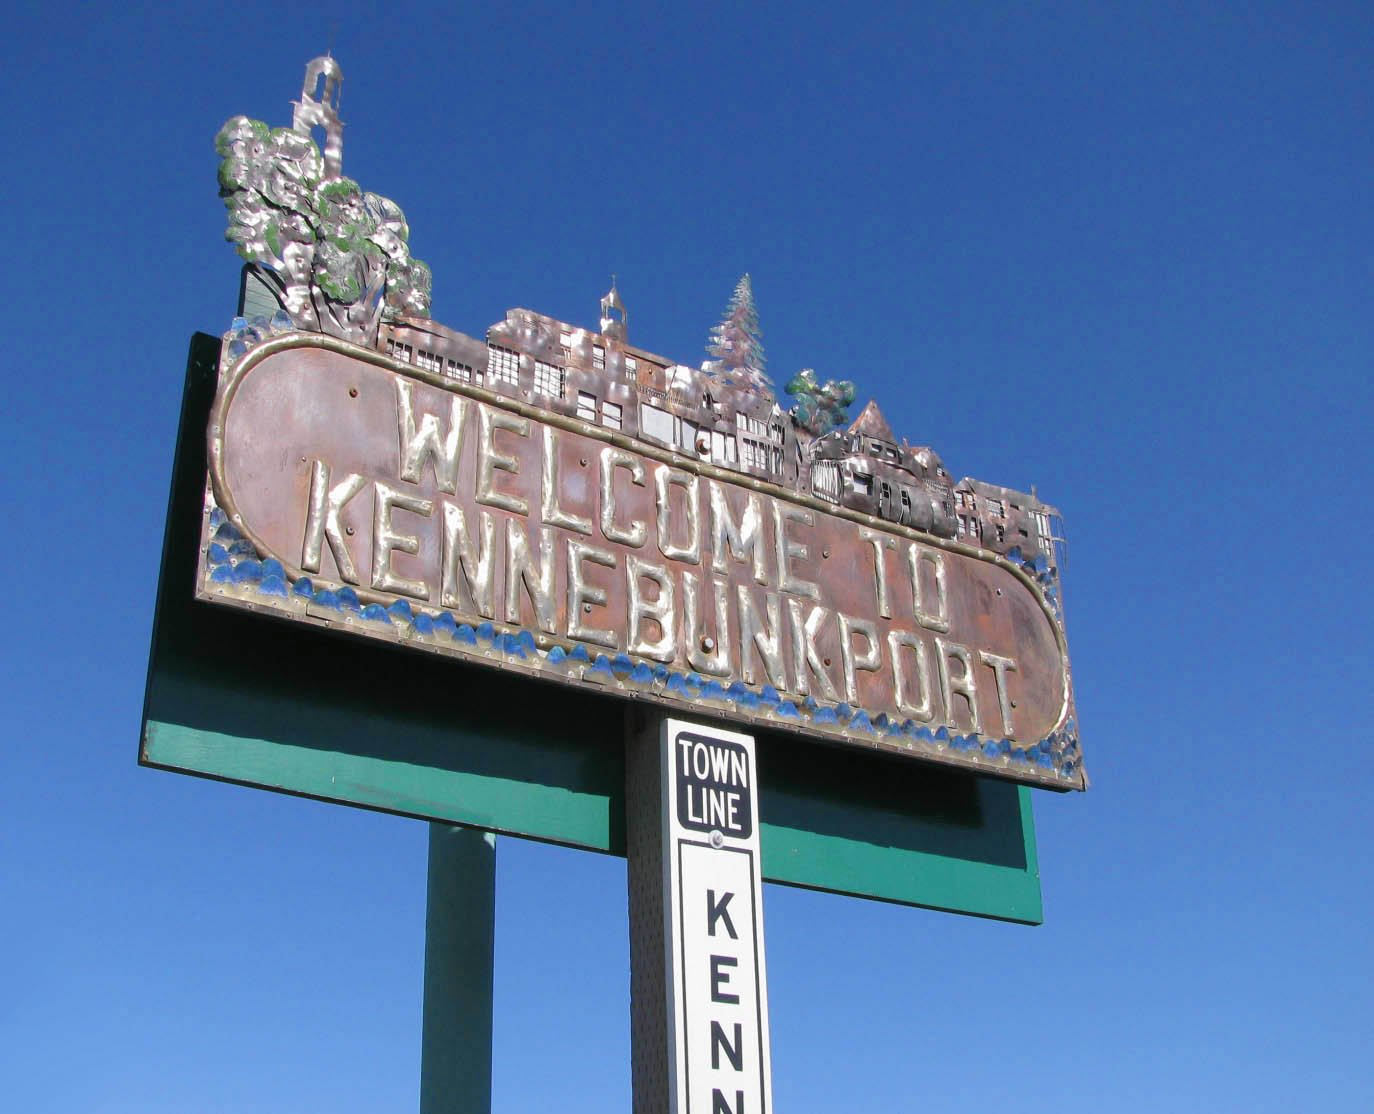 Welcome Kennebunkport - see much more at KennebunkportMaineLodging.com Site